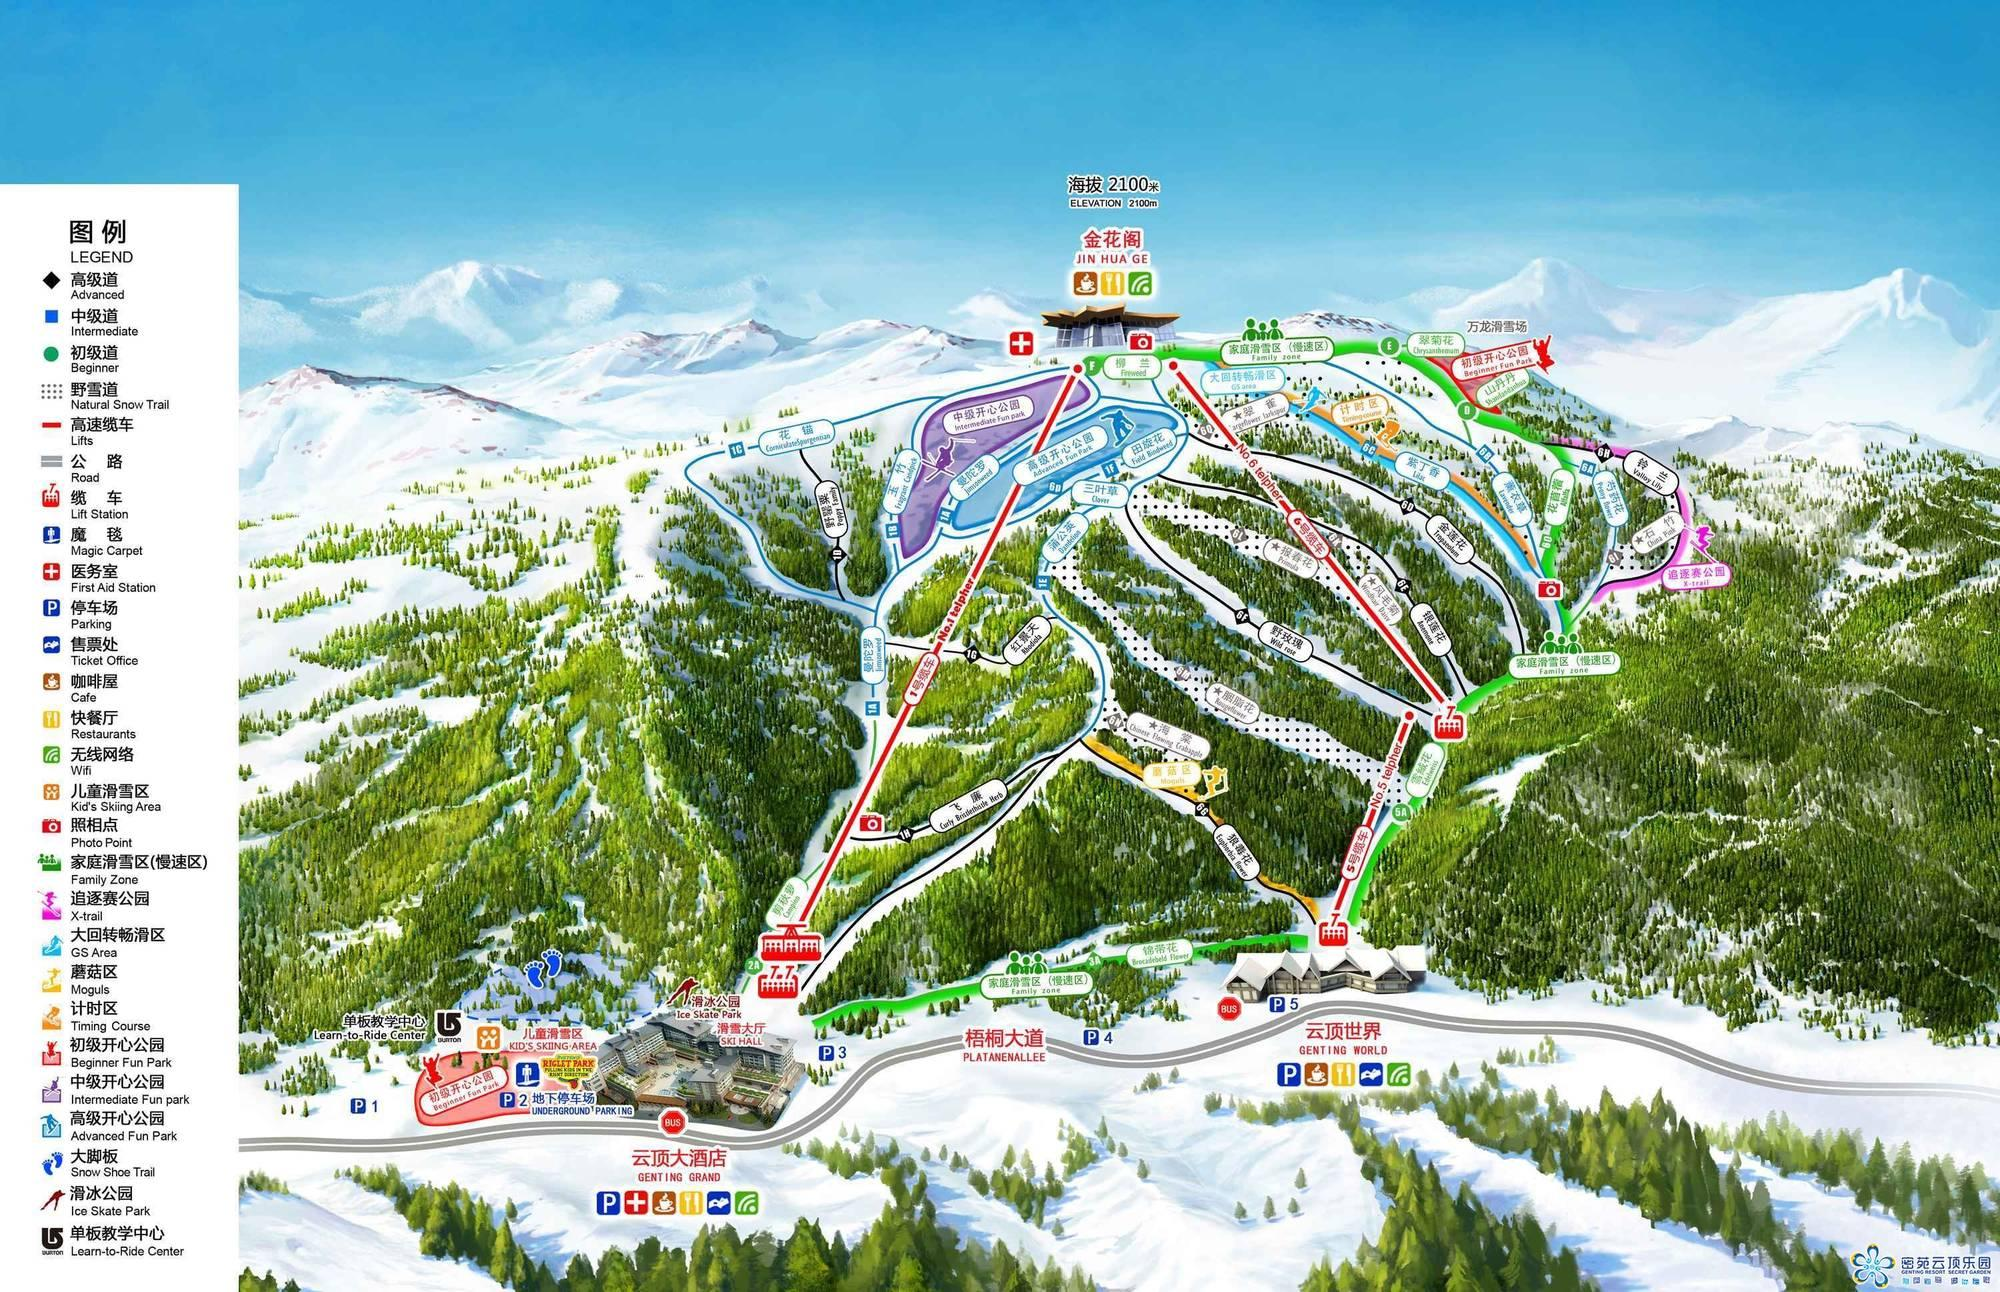 south dakota ski resorts map with Beijing 2022 Olympics Where Are The Ski Venues on Mt Rose Ski Tahoe furthermore 987572 besides Kayak And Canoe On A Nebraska River Vacation further 6107 in addition Beijing 2022 Olympics Where Are The Ski Venues.